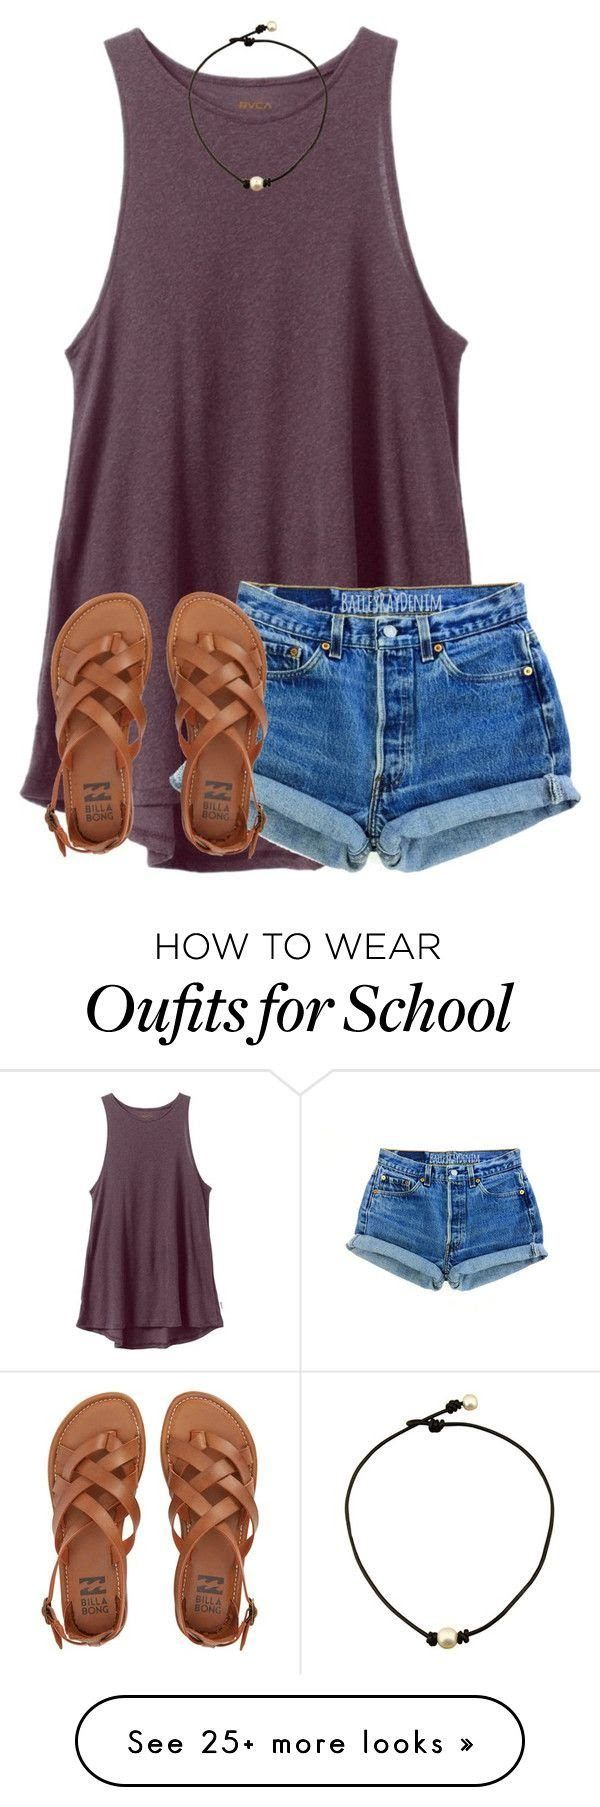 e6a398b63 10 cute summer school outfits you should try 1 - 10 cute summer ...